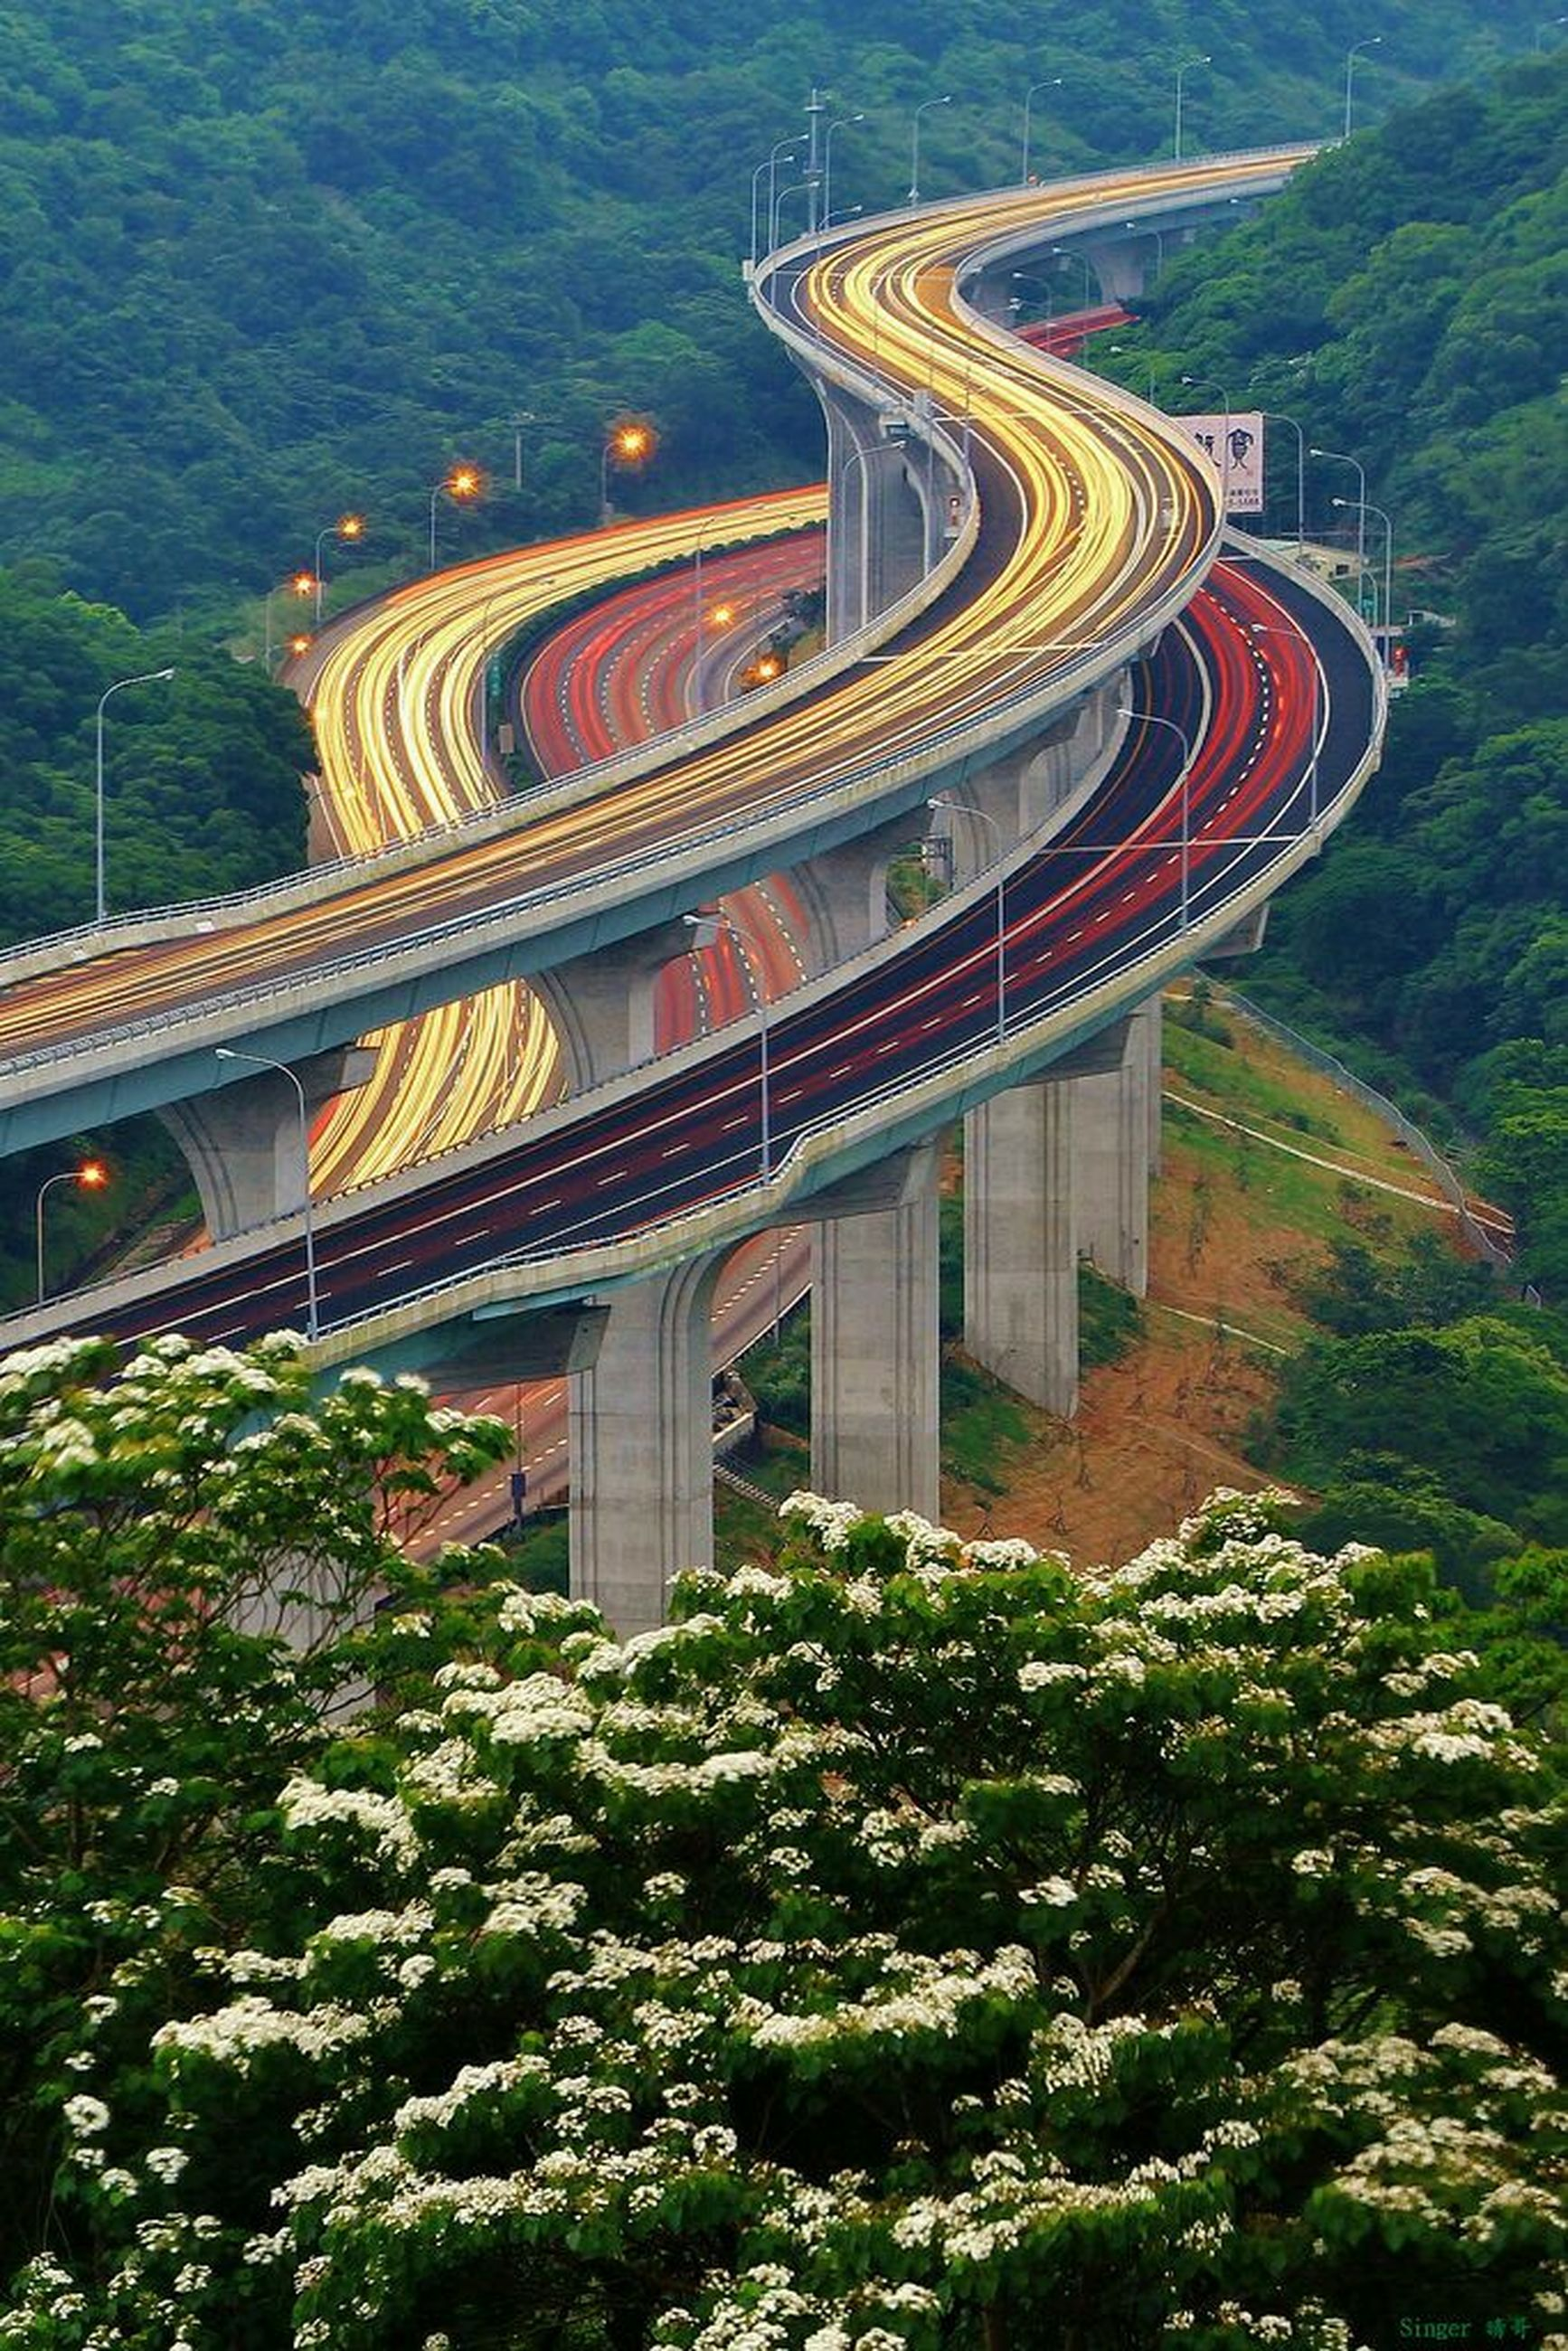 architecture, built structure, tree, connection, high angle view, transportation, bridge - man made structure, building exterior, travel destinations, growth, travel, landscape, green color, outdoors, road, mountain, curve, forest, tourism, city